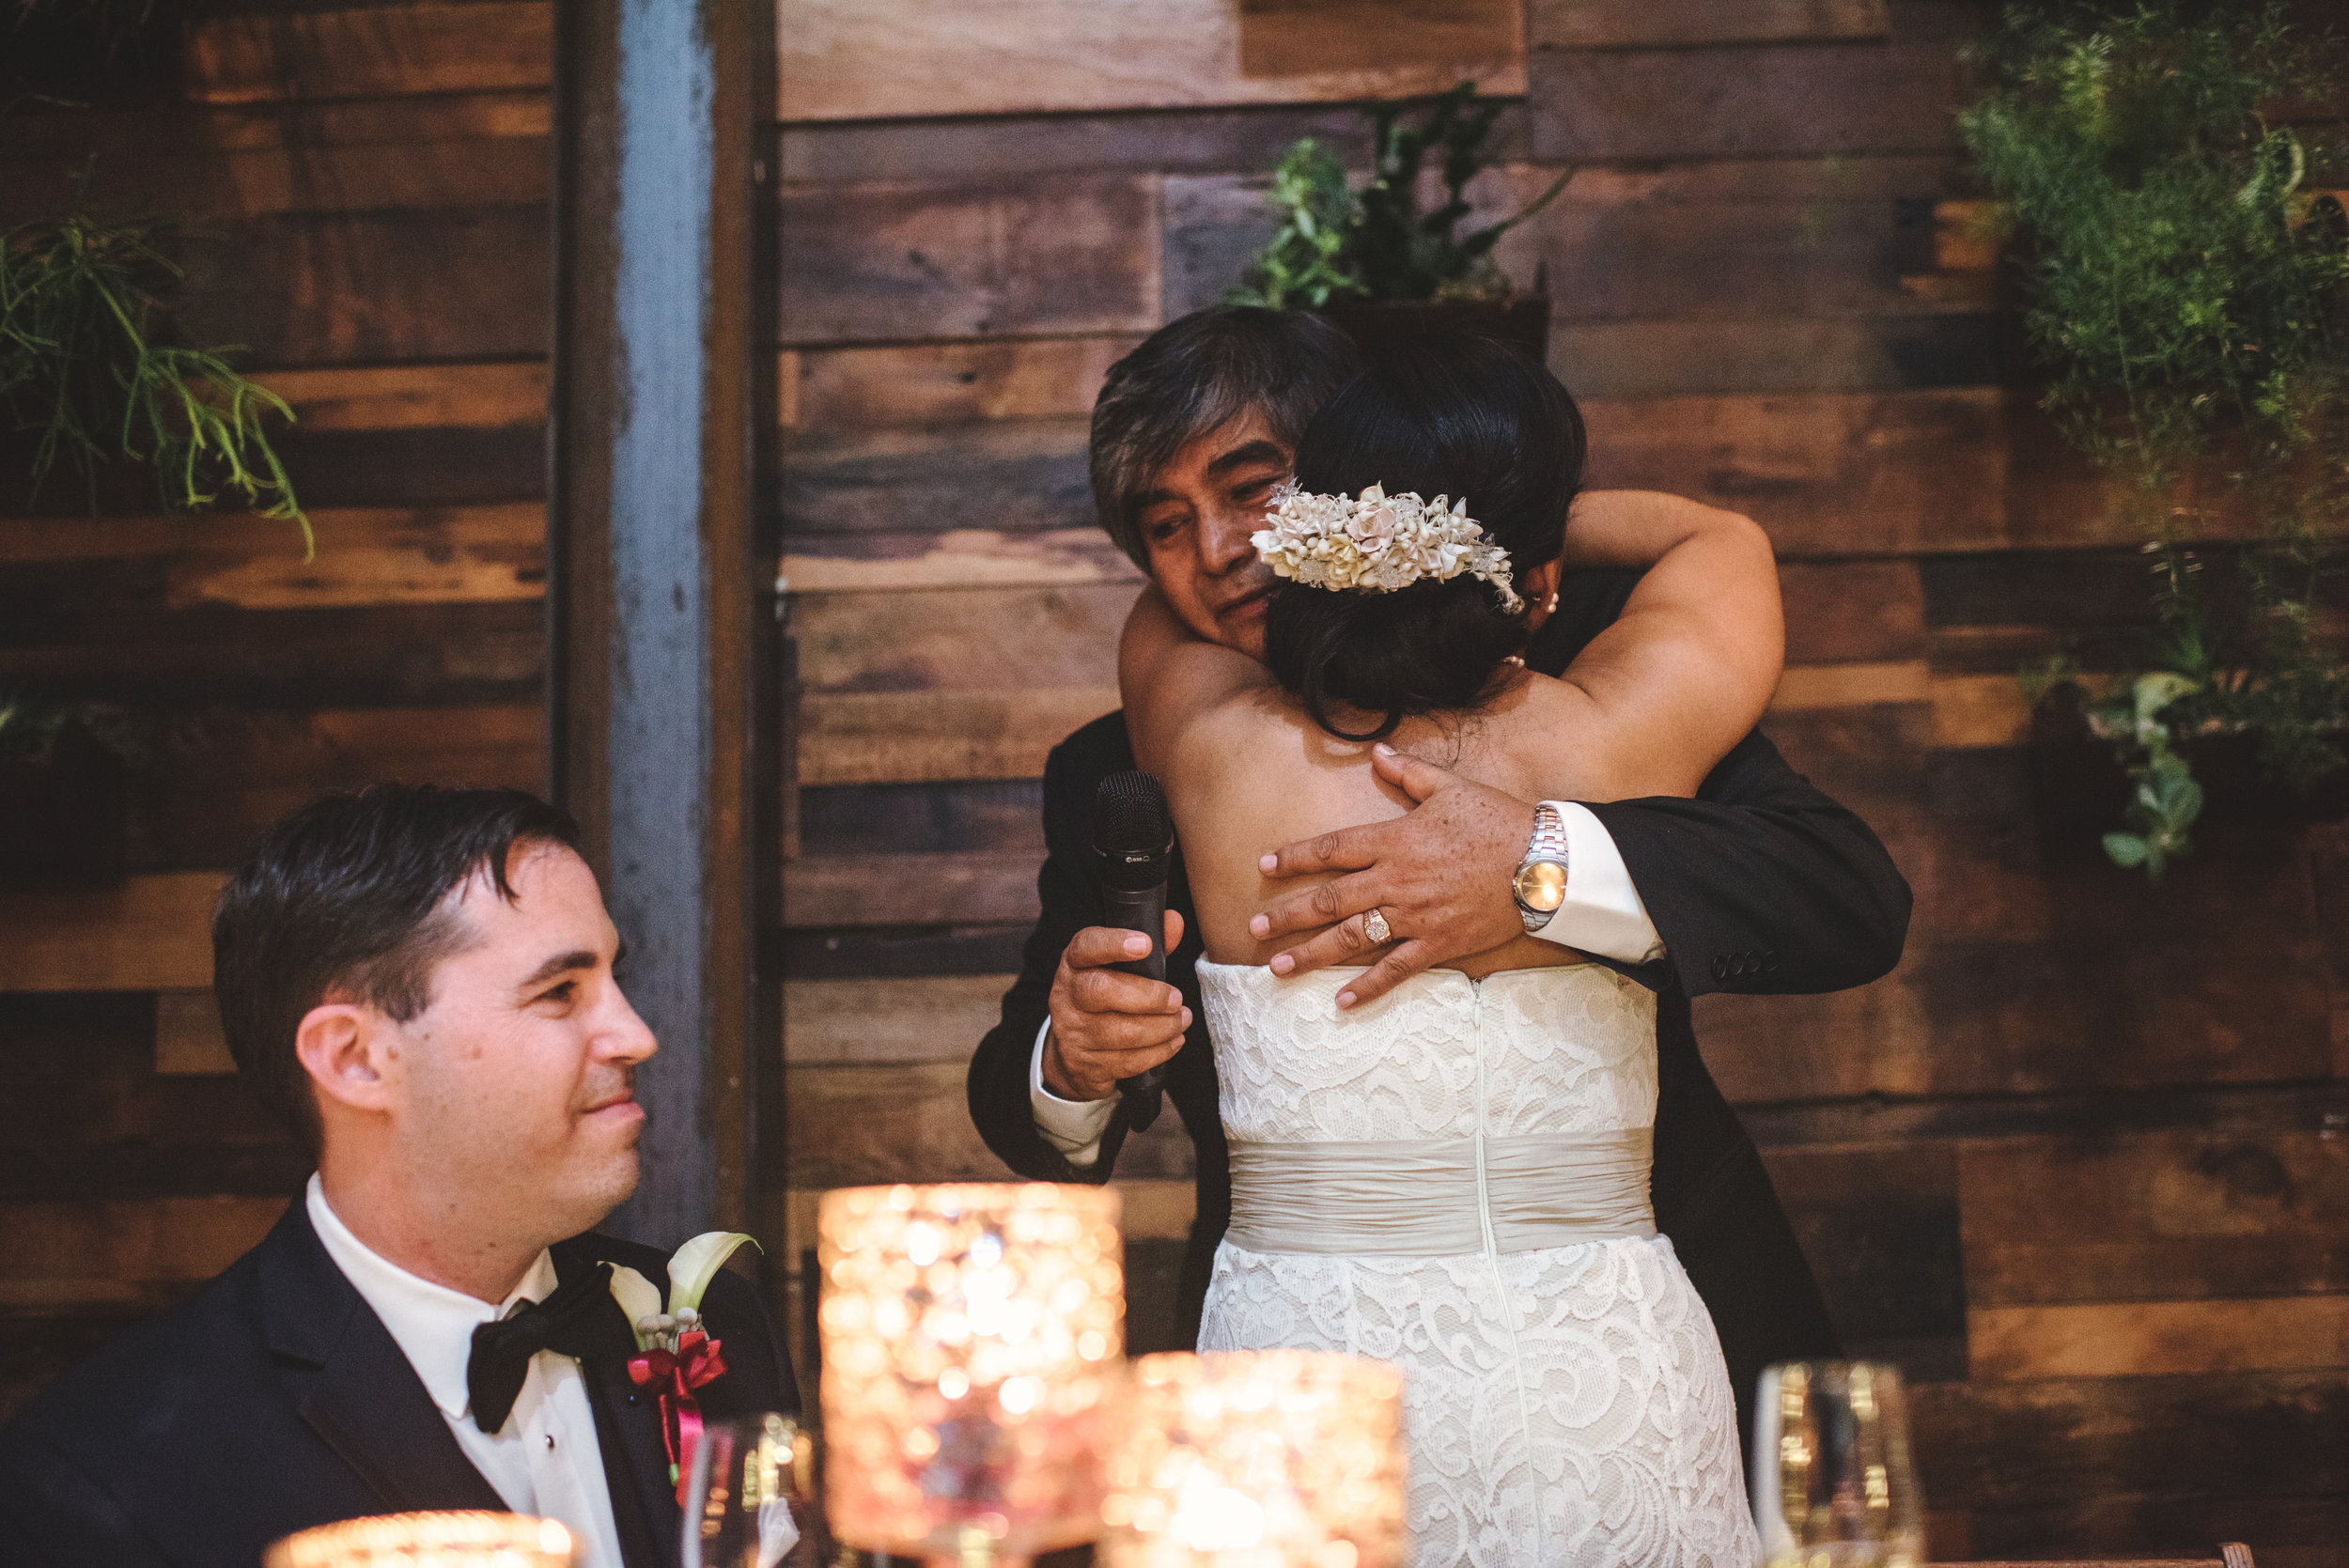 BROOKLYN WINERY WEDDING - TWOTWENTY by CHI-CHI AGBIM-399.jpg